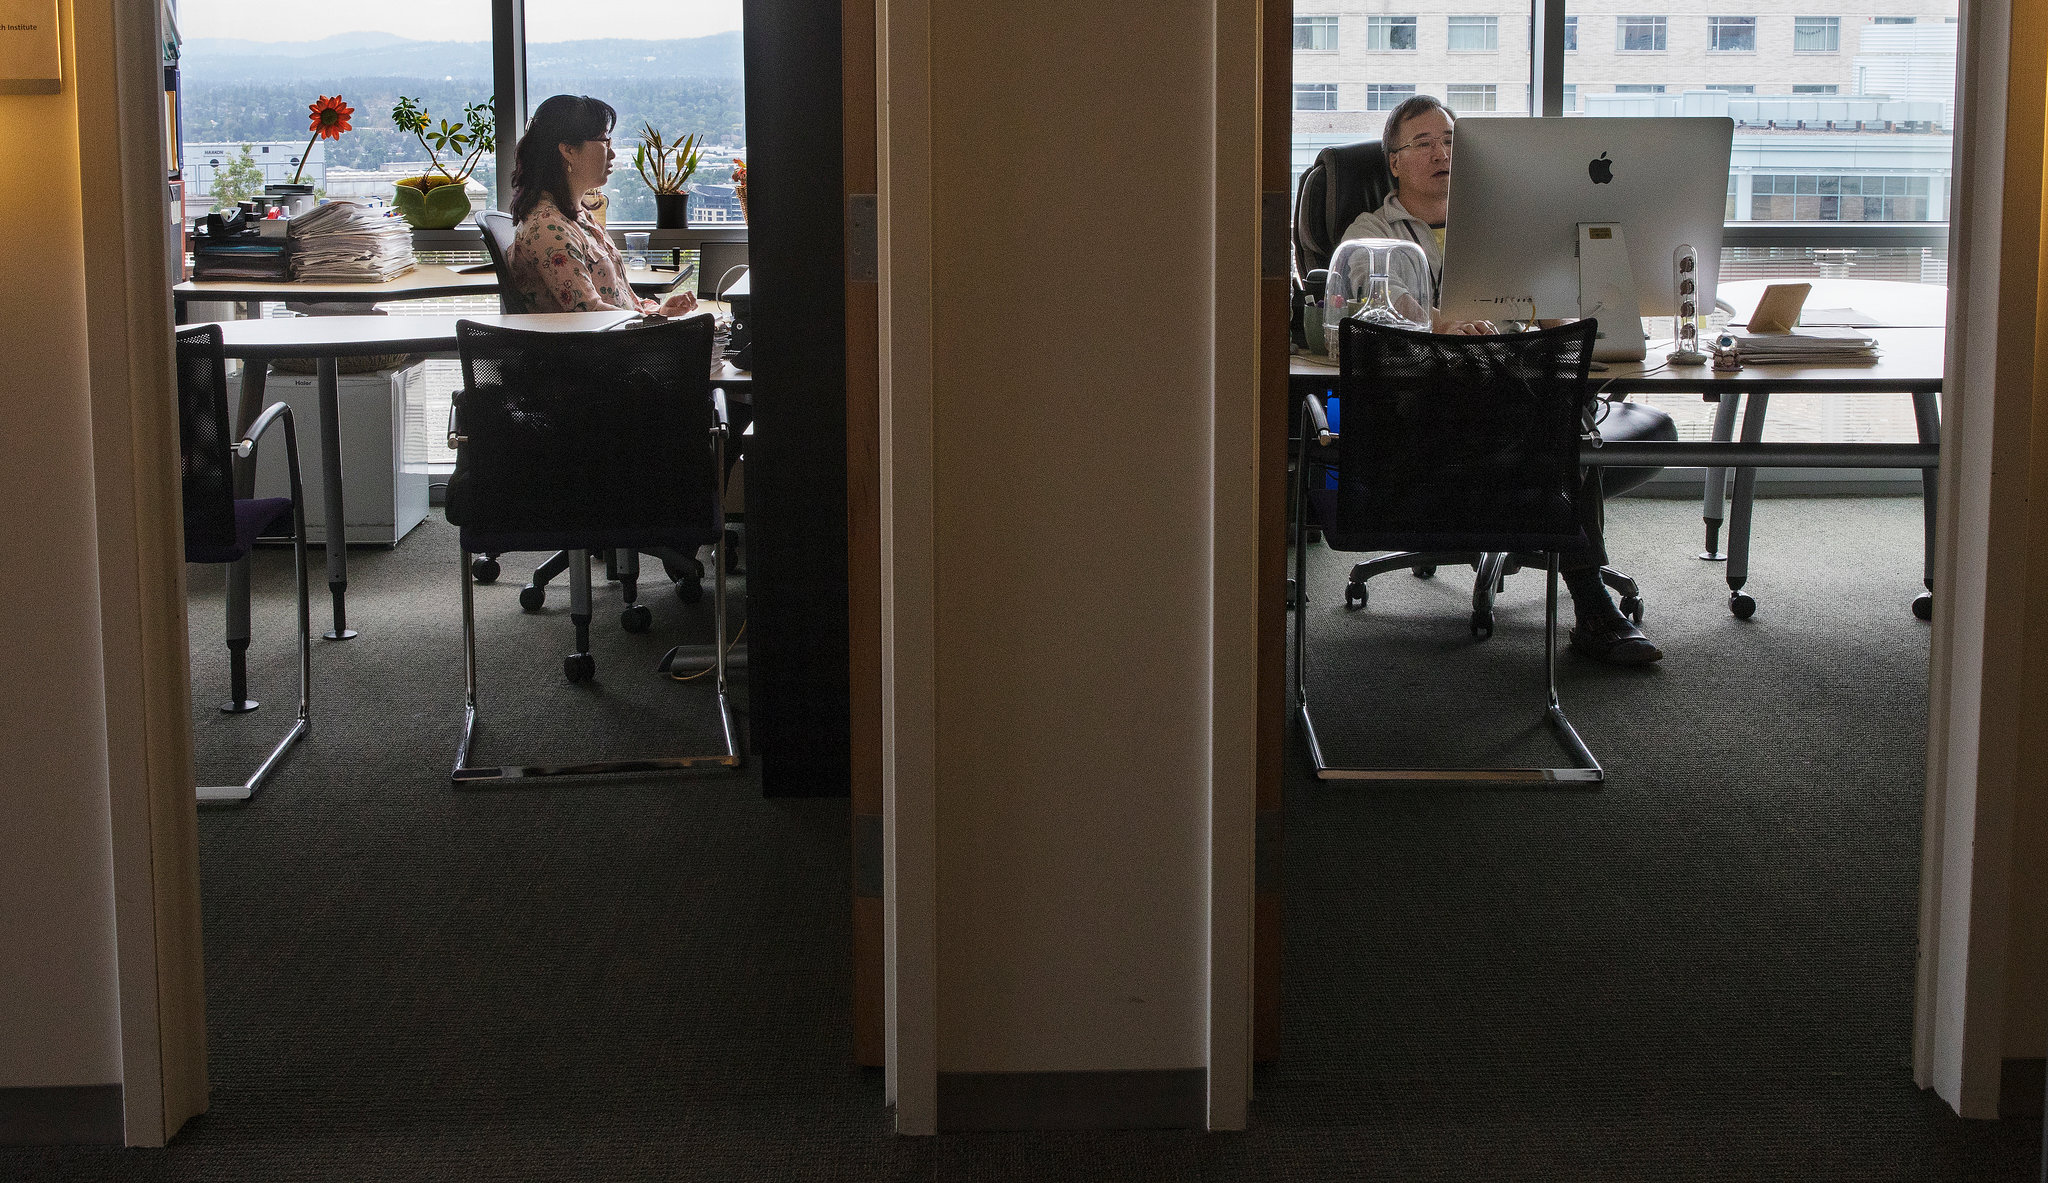 Soo-Kyung, left, and Jae, right, work next door to each other; together they are researching FOXG1 syndrome, the rare disorder Yuna has.CreditRuth Fremson/The New York Times